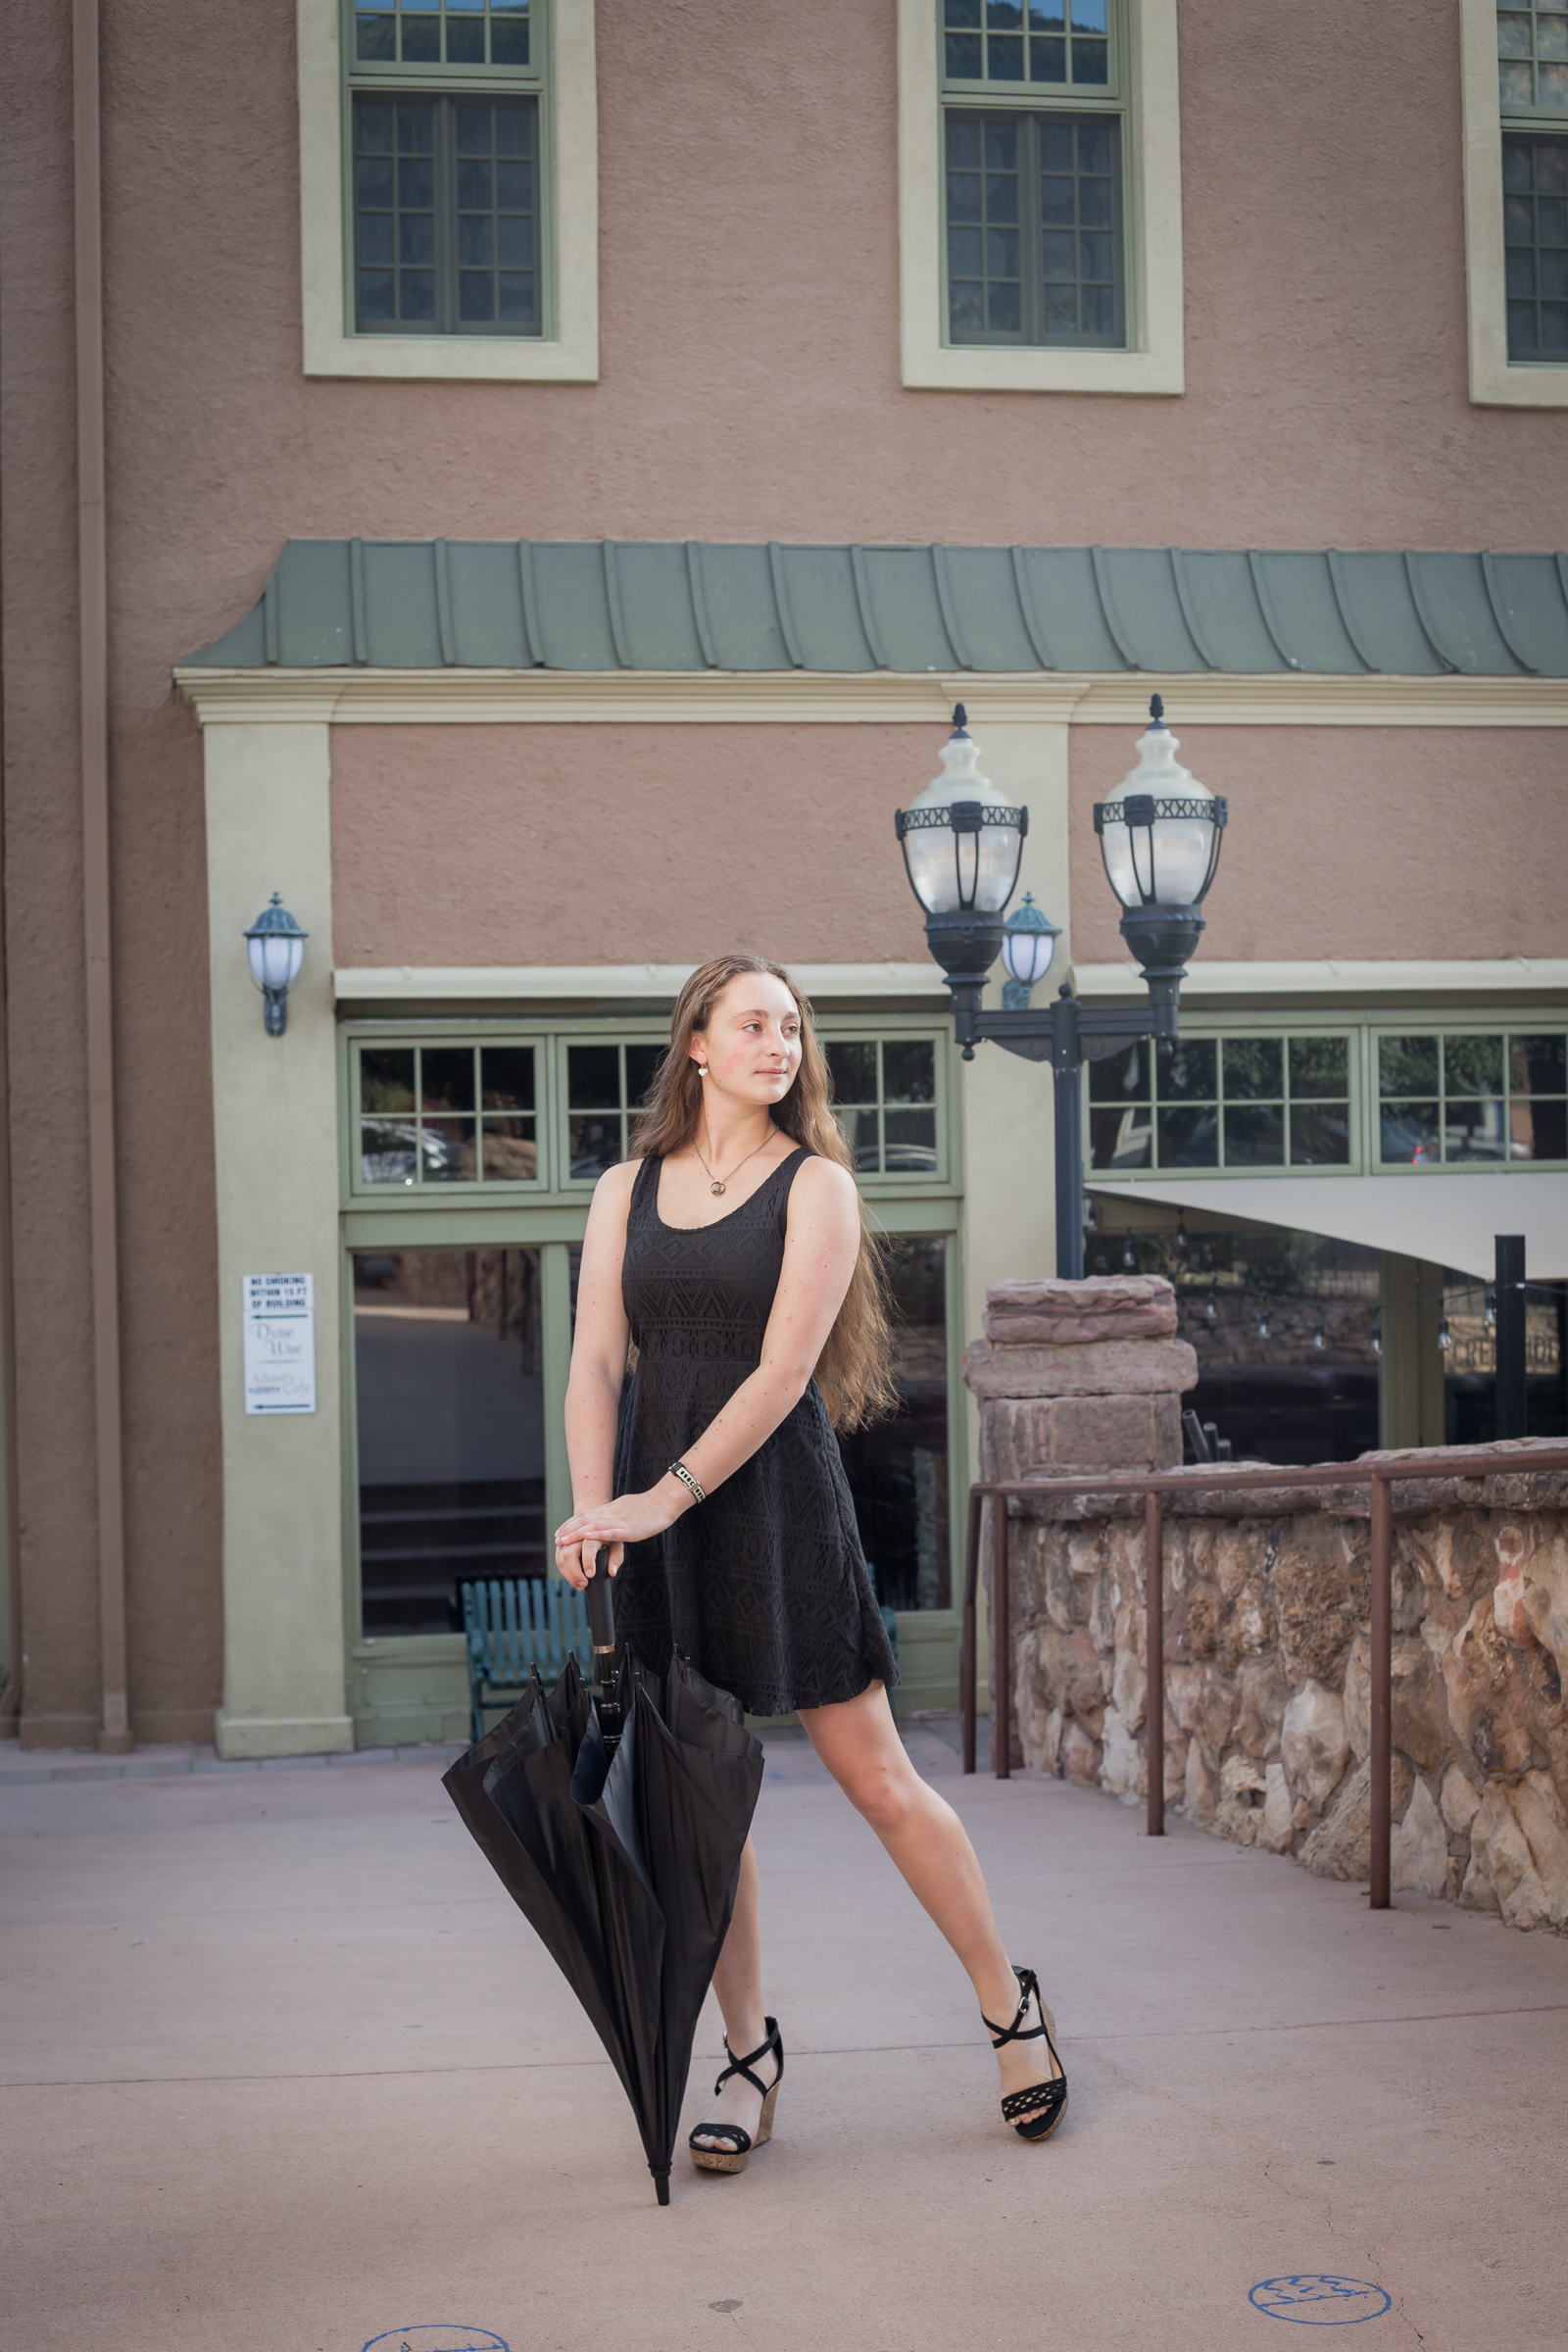 Colorado Springs High School Senior Session in Manitou Springs | Stacy Carosa Photography | Colorado  Springs Senior Portrait Photographer